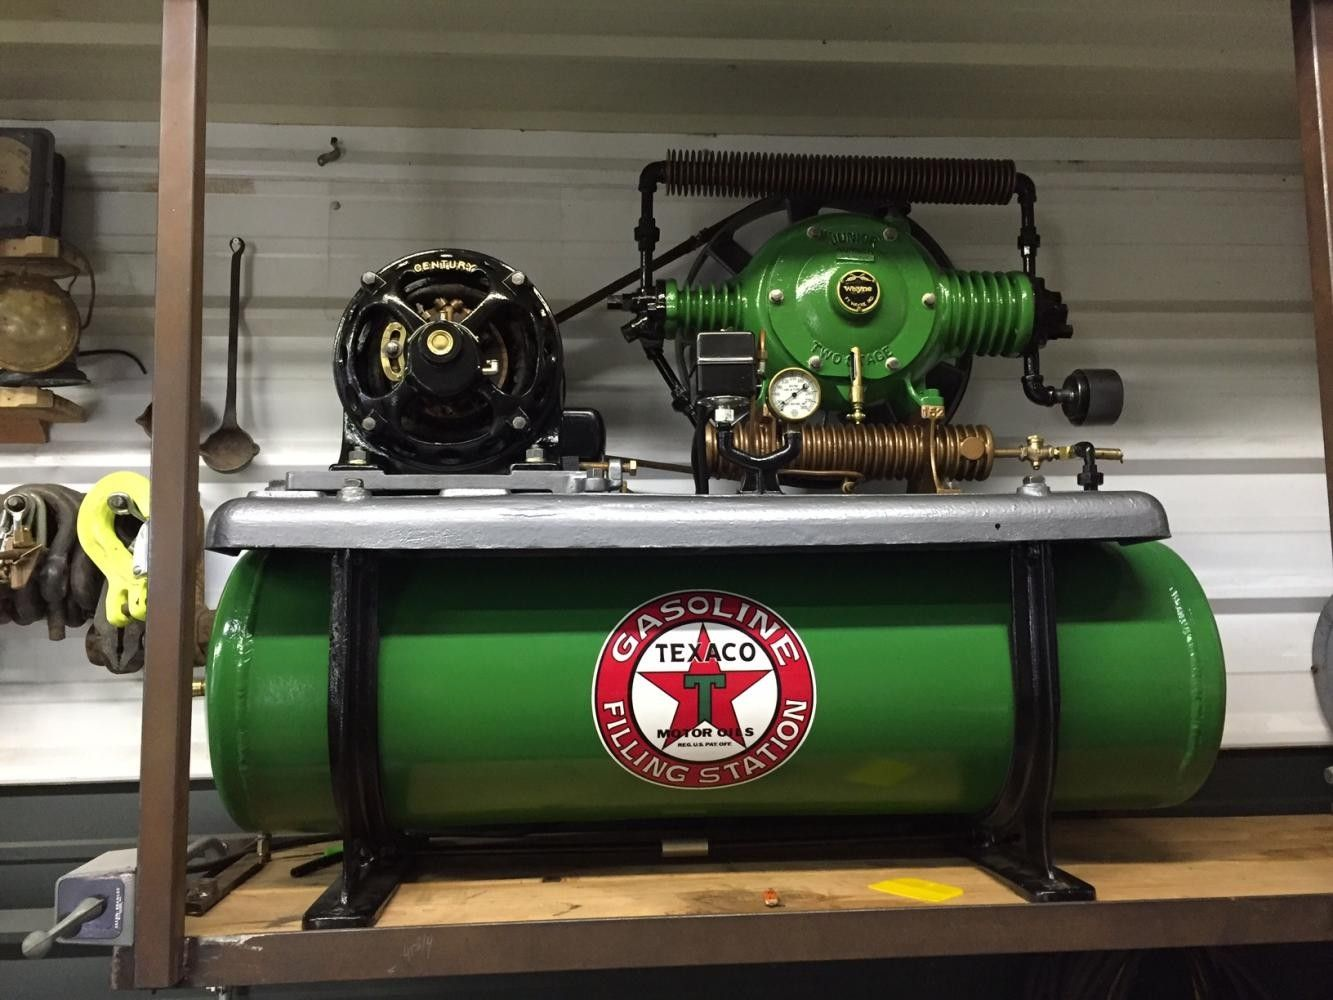 Pin by travis911 on Tools Air compressor, Vintage air